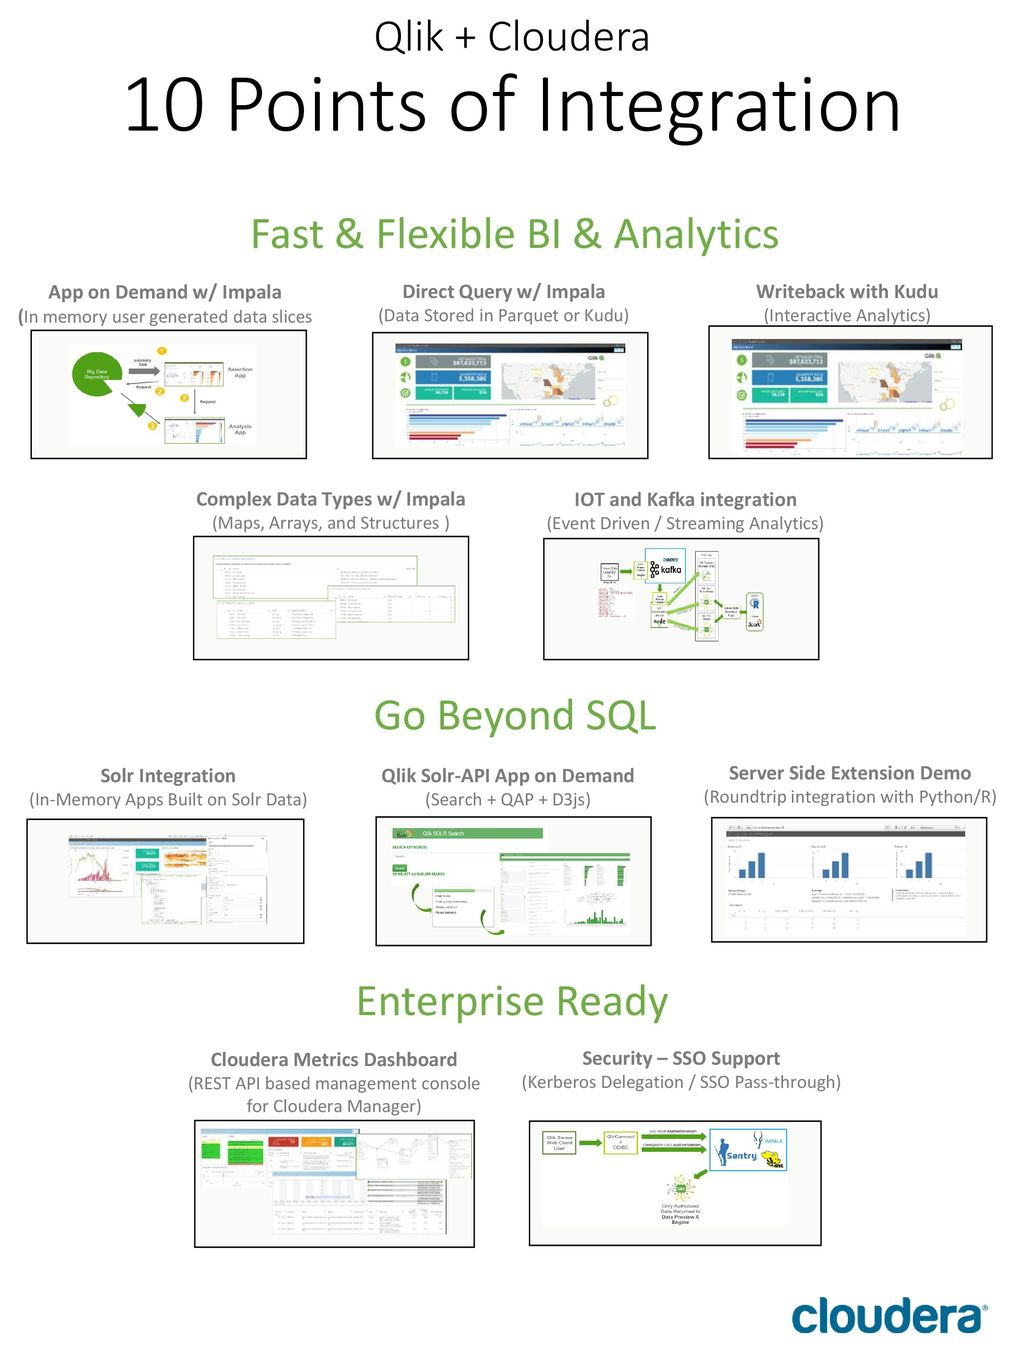 Qlik + Cloudera 10 Points of Integration